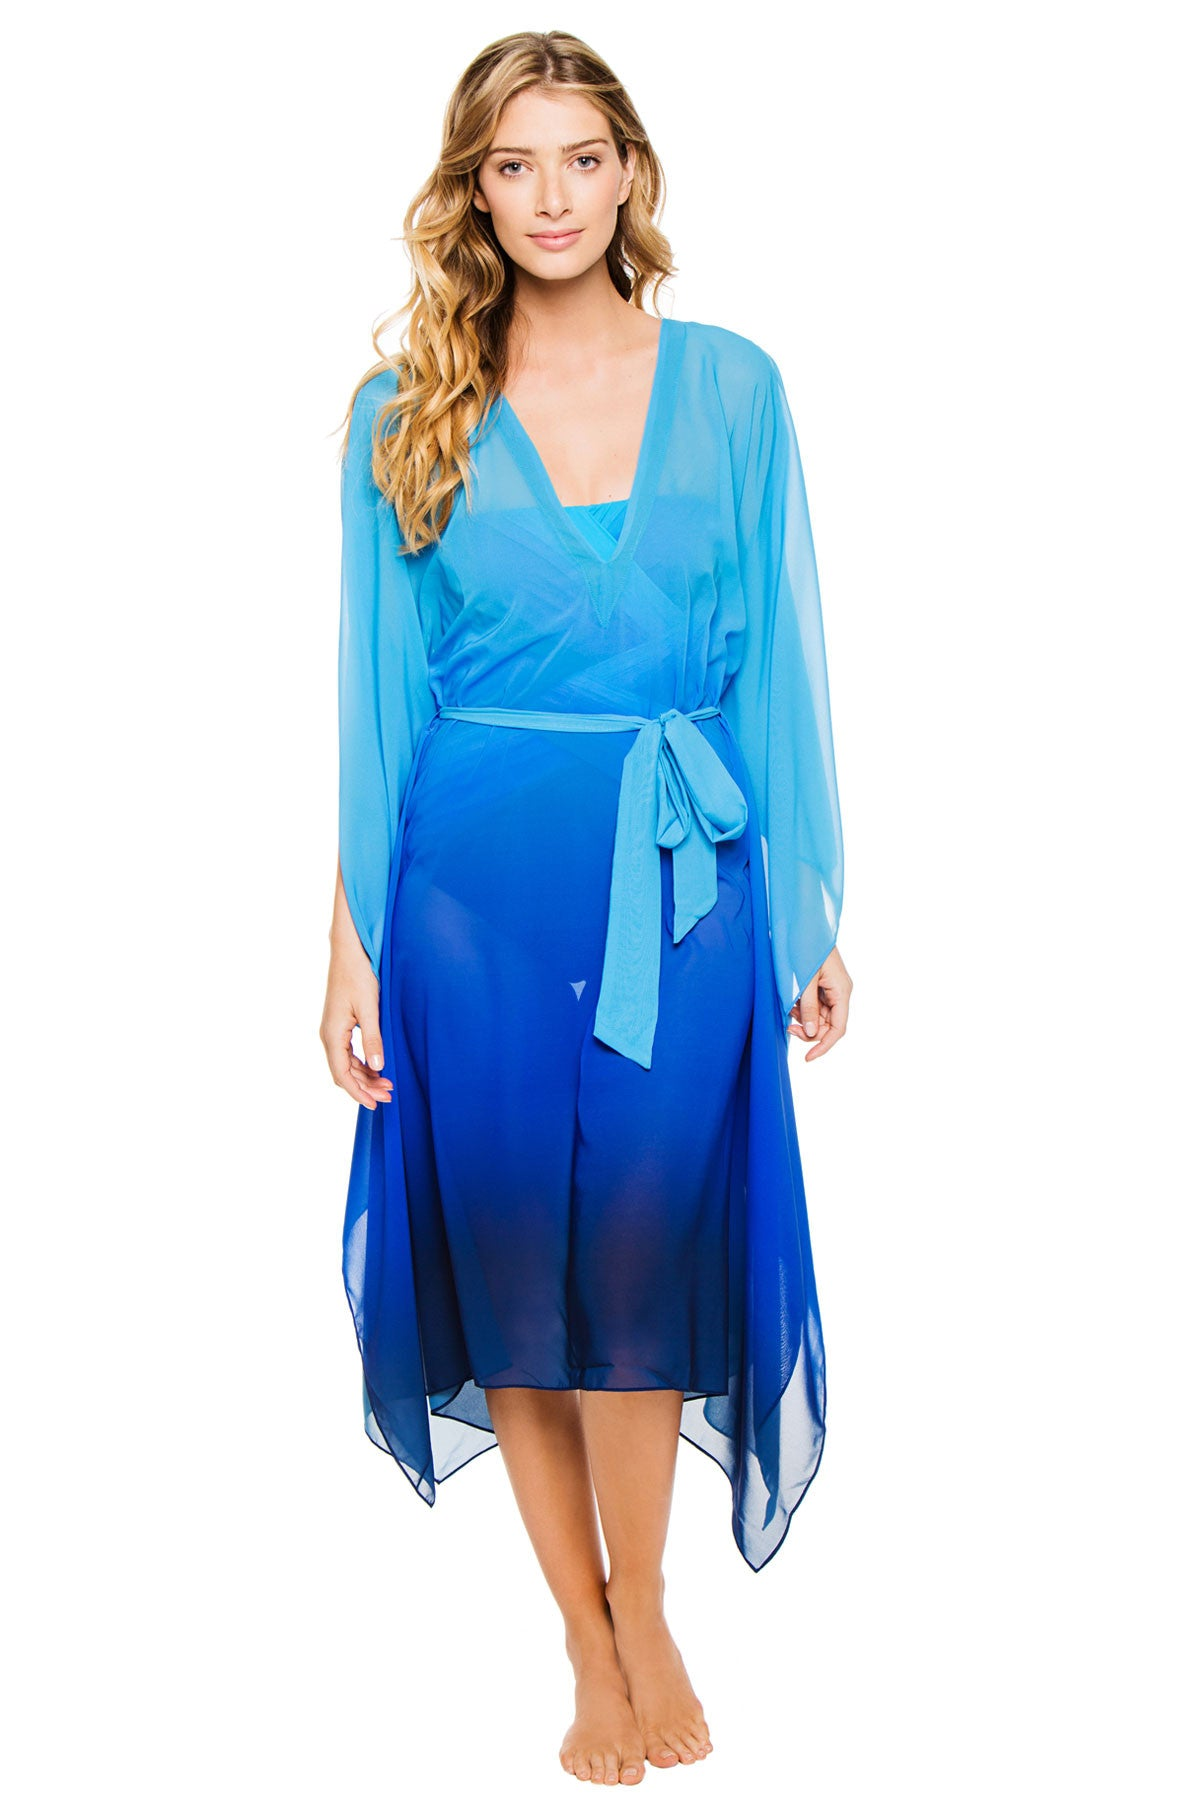 f4ad3886ccba2 Gottex Harmony Blue Caftan Swimsuit Cover Up - forENVY